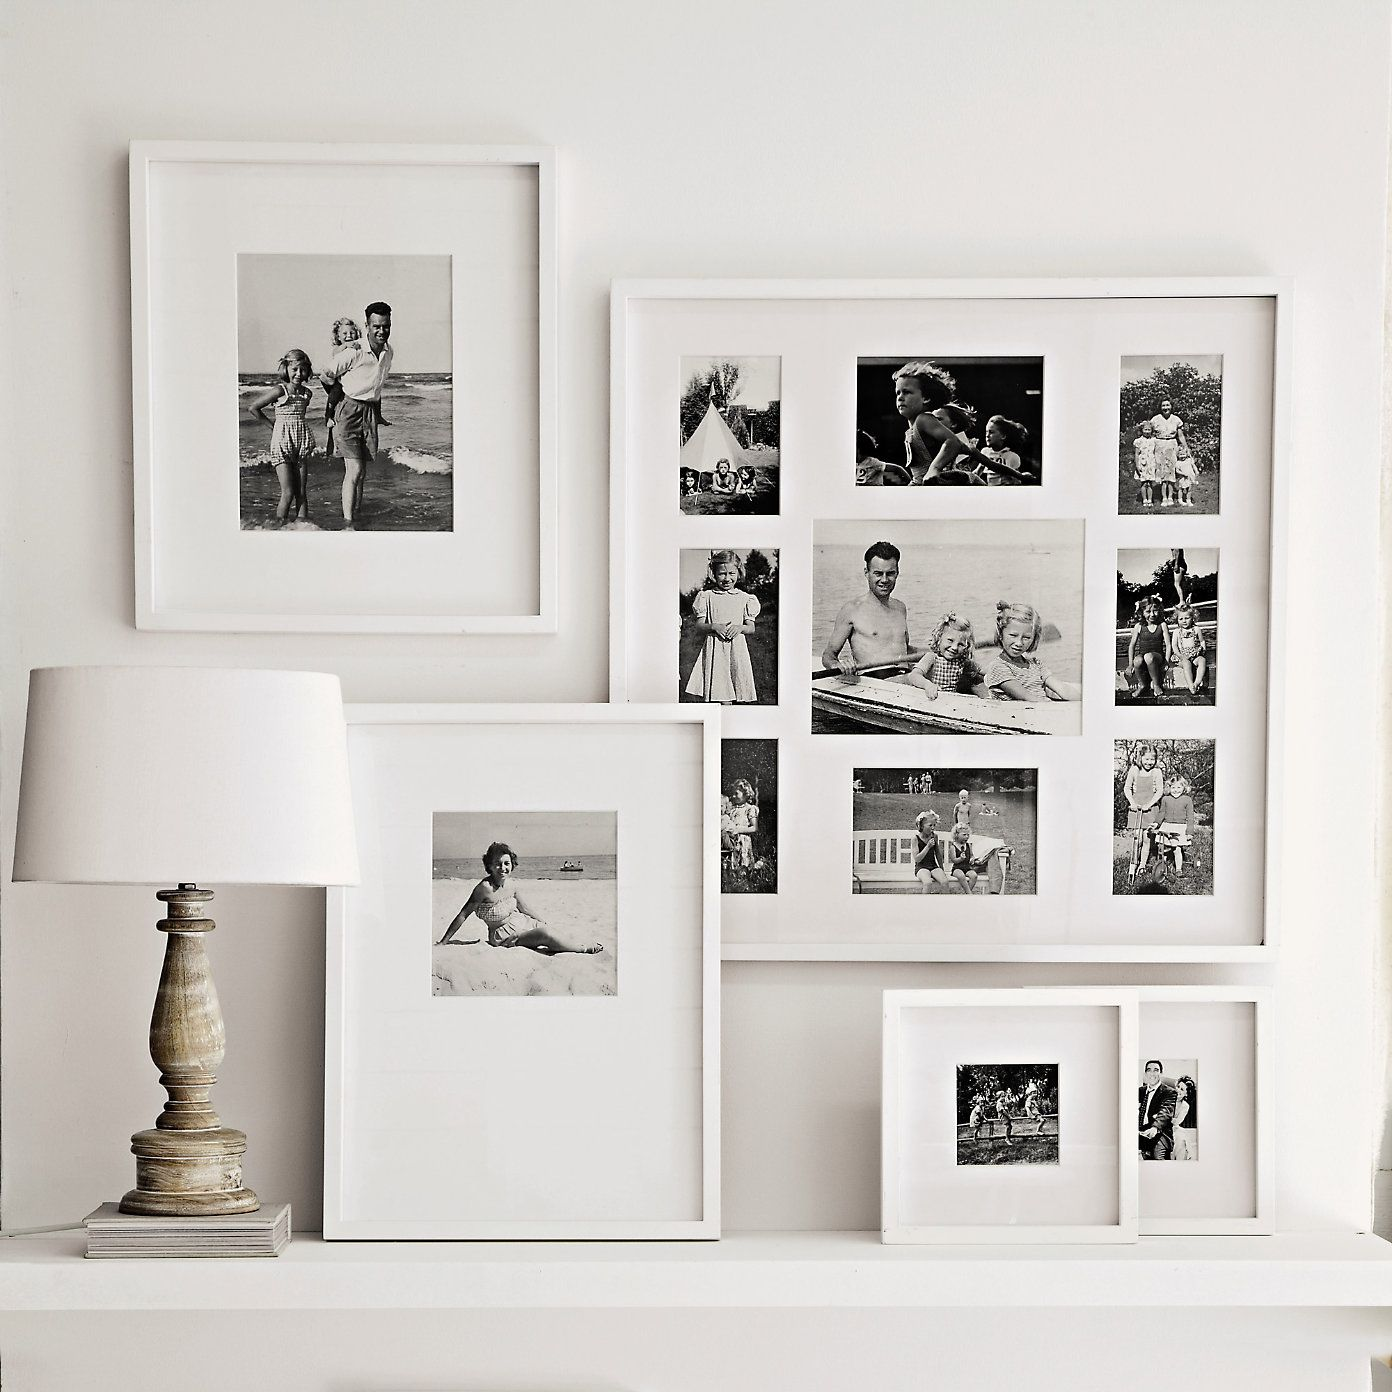 Gallery Wall Love The Clean Simplicity Of B&W Pics And